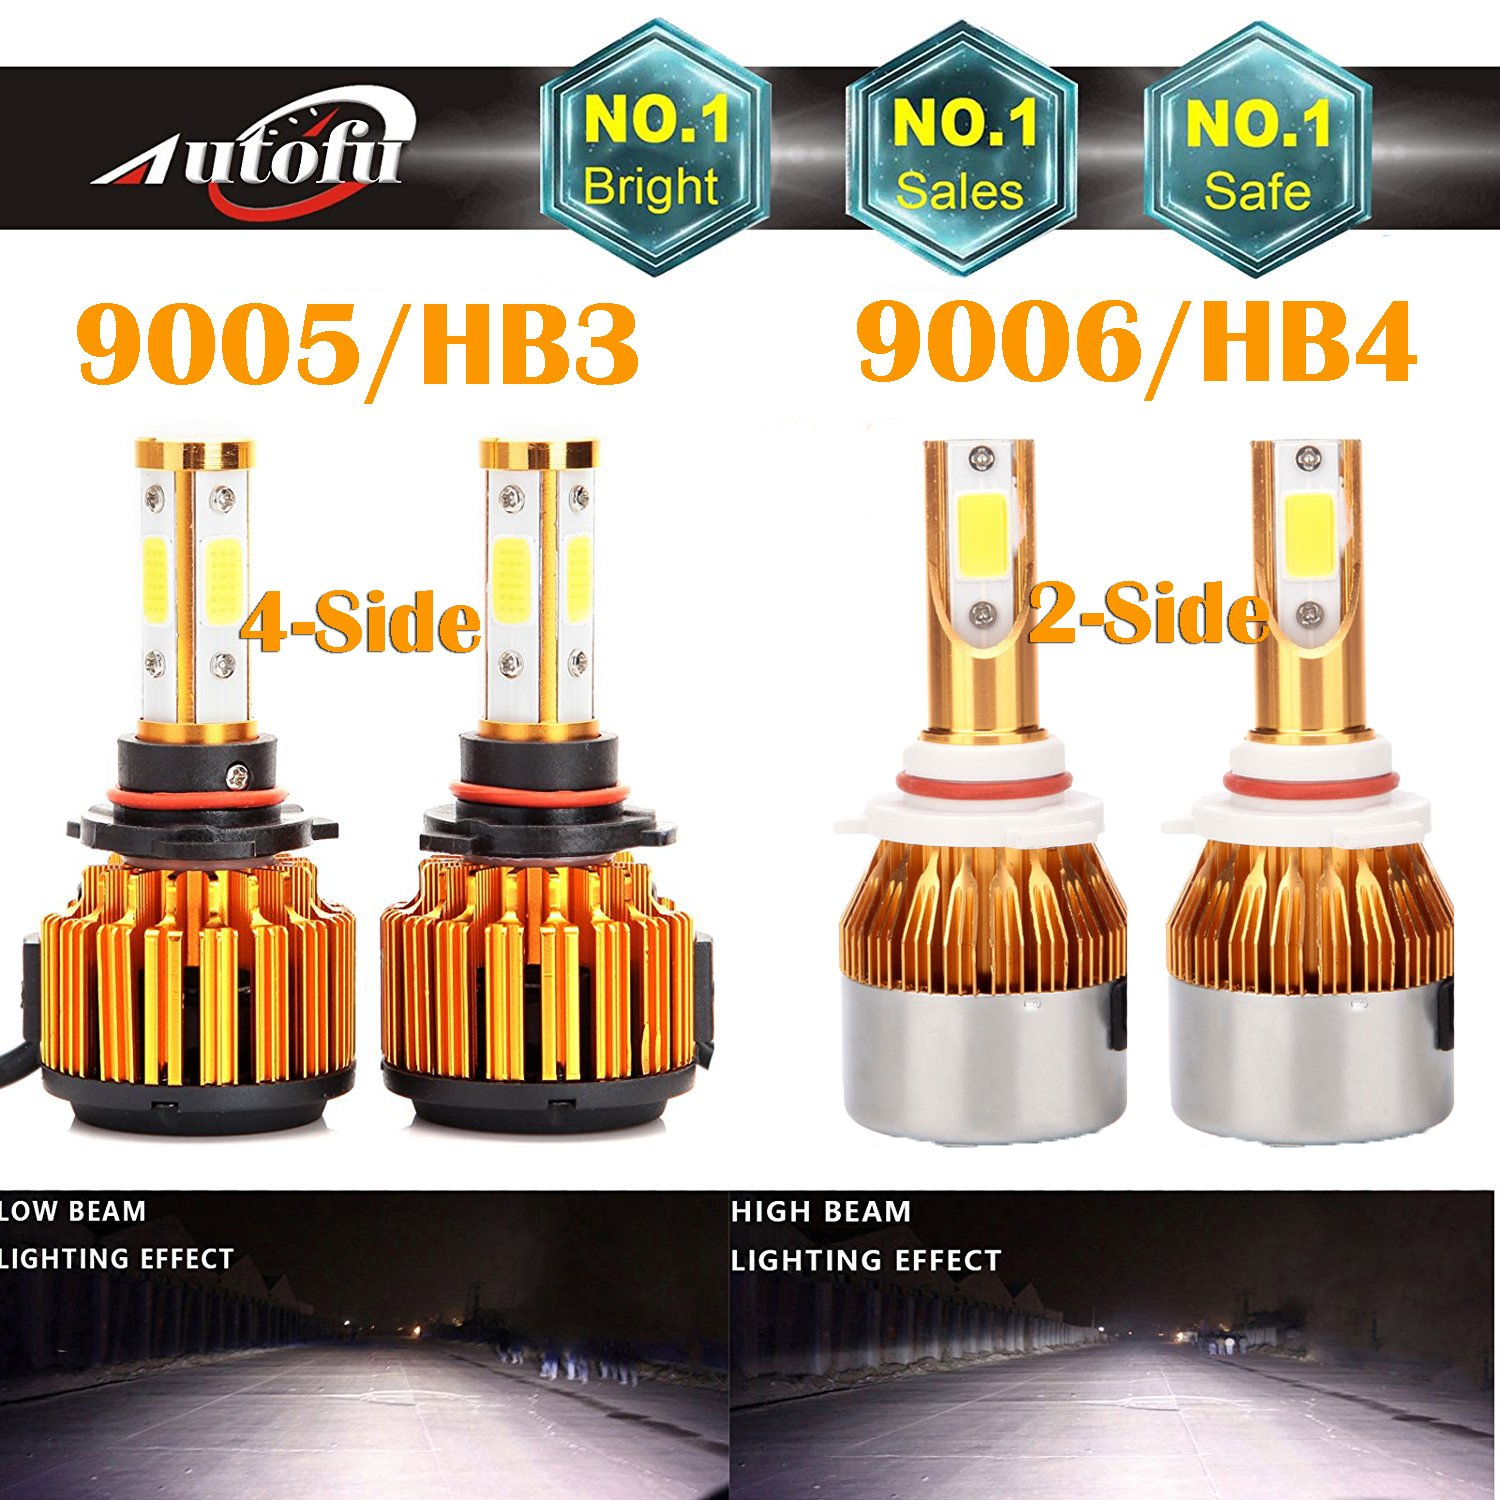 9005 And 9006 Led Headlight Bulbs 6000k White High Low How To Install An Electric Fan Pics Ford Explorer Ranger Forums Beam Combo Set Super Bright For Chevrolet Silverado 1500 Gmc Chevy Tahoe Dodge Chrysler Fog Lamp Package Of 4 Automotive